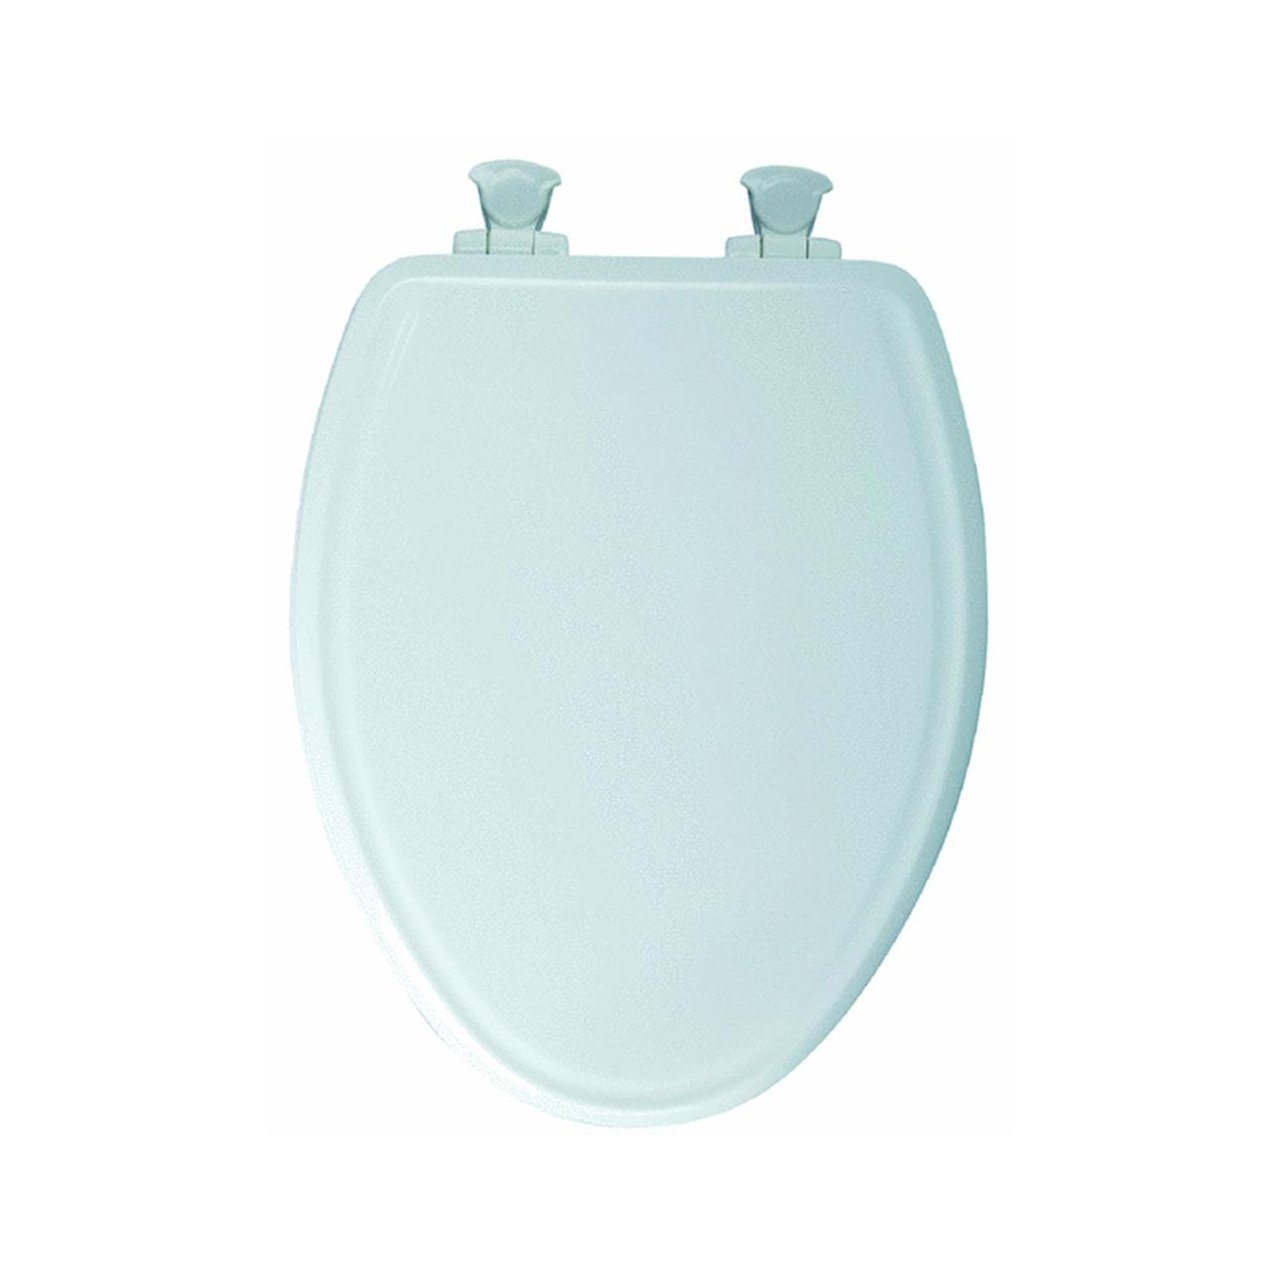 best slow close toilet seat. Mayfair 148SLOWA 000 1848SLOWA Slow Close Molded Wood Toilet Seat  featuring Whisper Best Seats 2017 Reviews and Top Picks